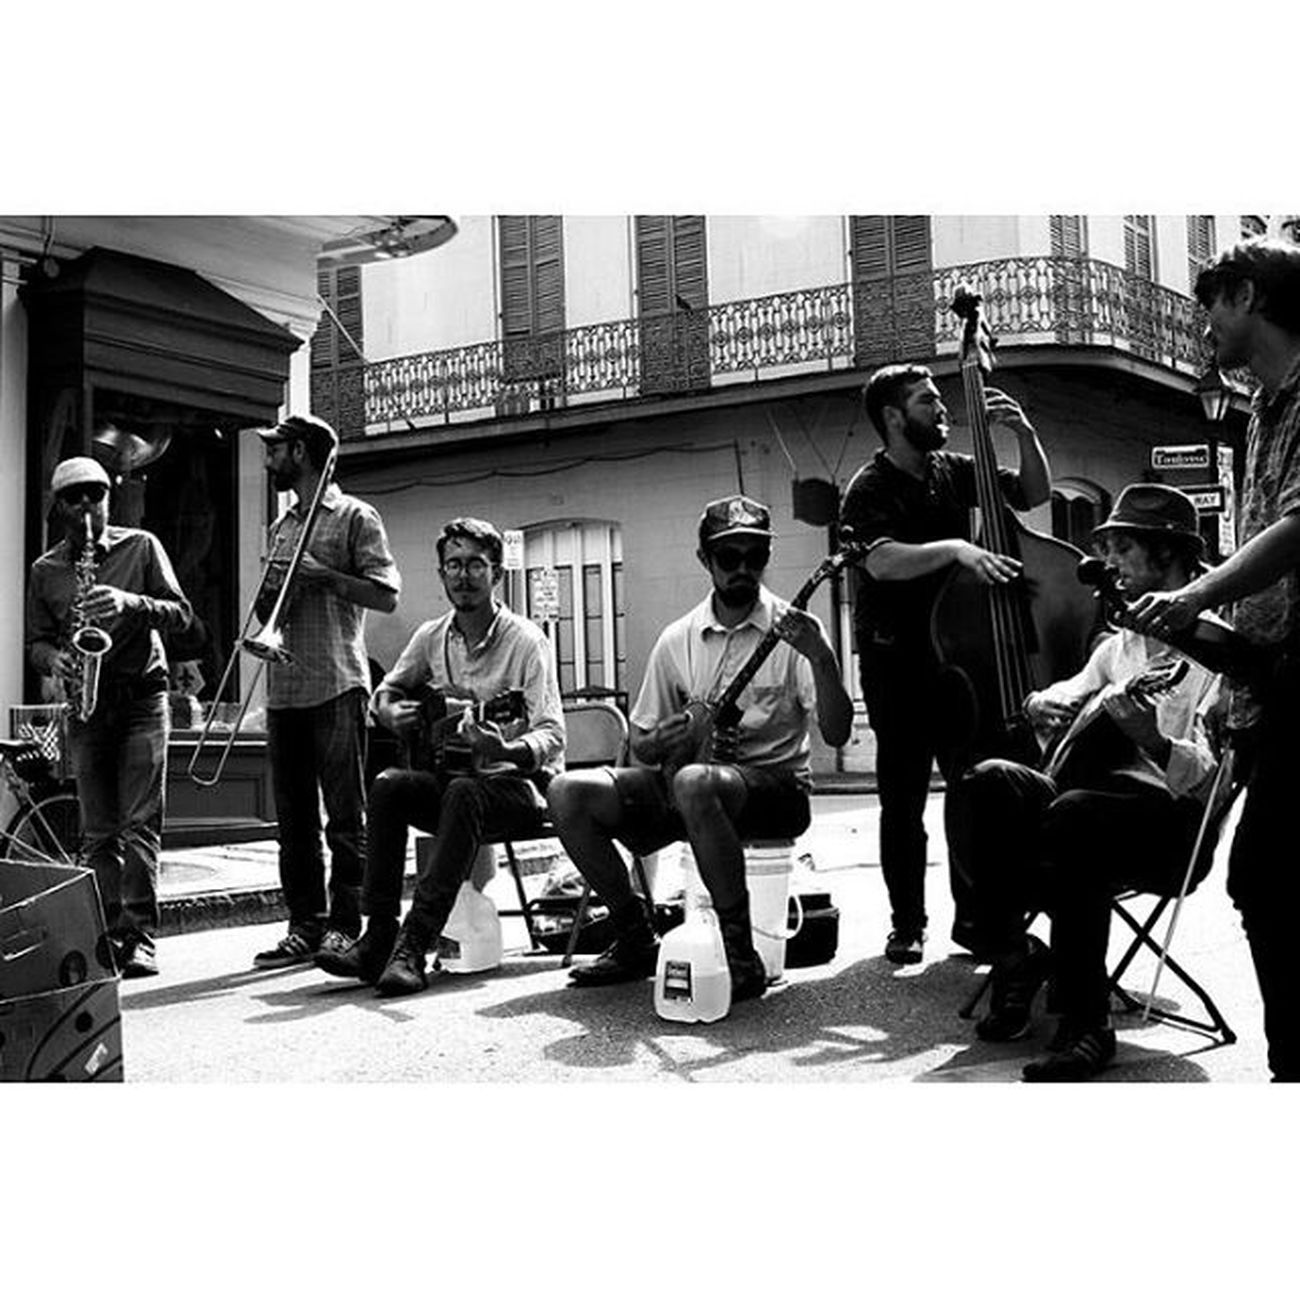 The Band Plays On Neworleans NOLA Louisiana Thisisneworleans music streetperformers oldtimey streetportrait streetphotography candid blackandwhite bnw monochrome 35mm canon travel yearoftravel photooftheday